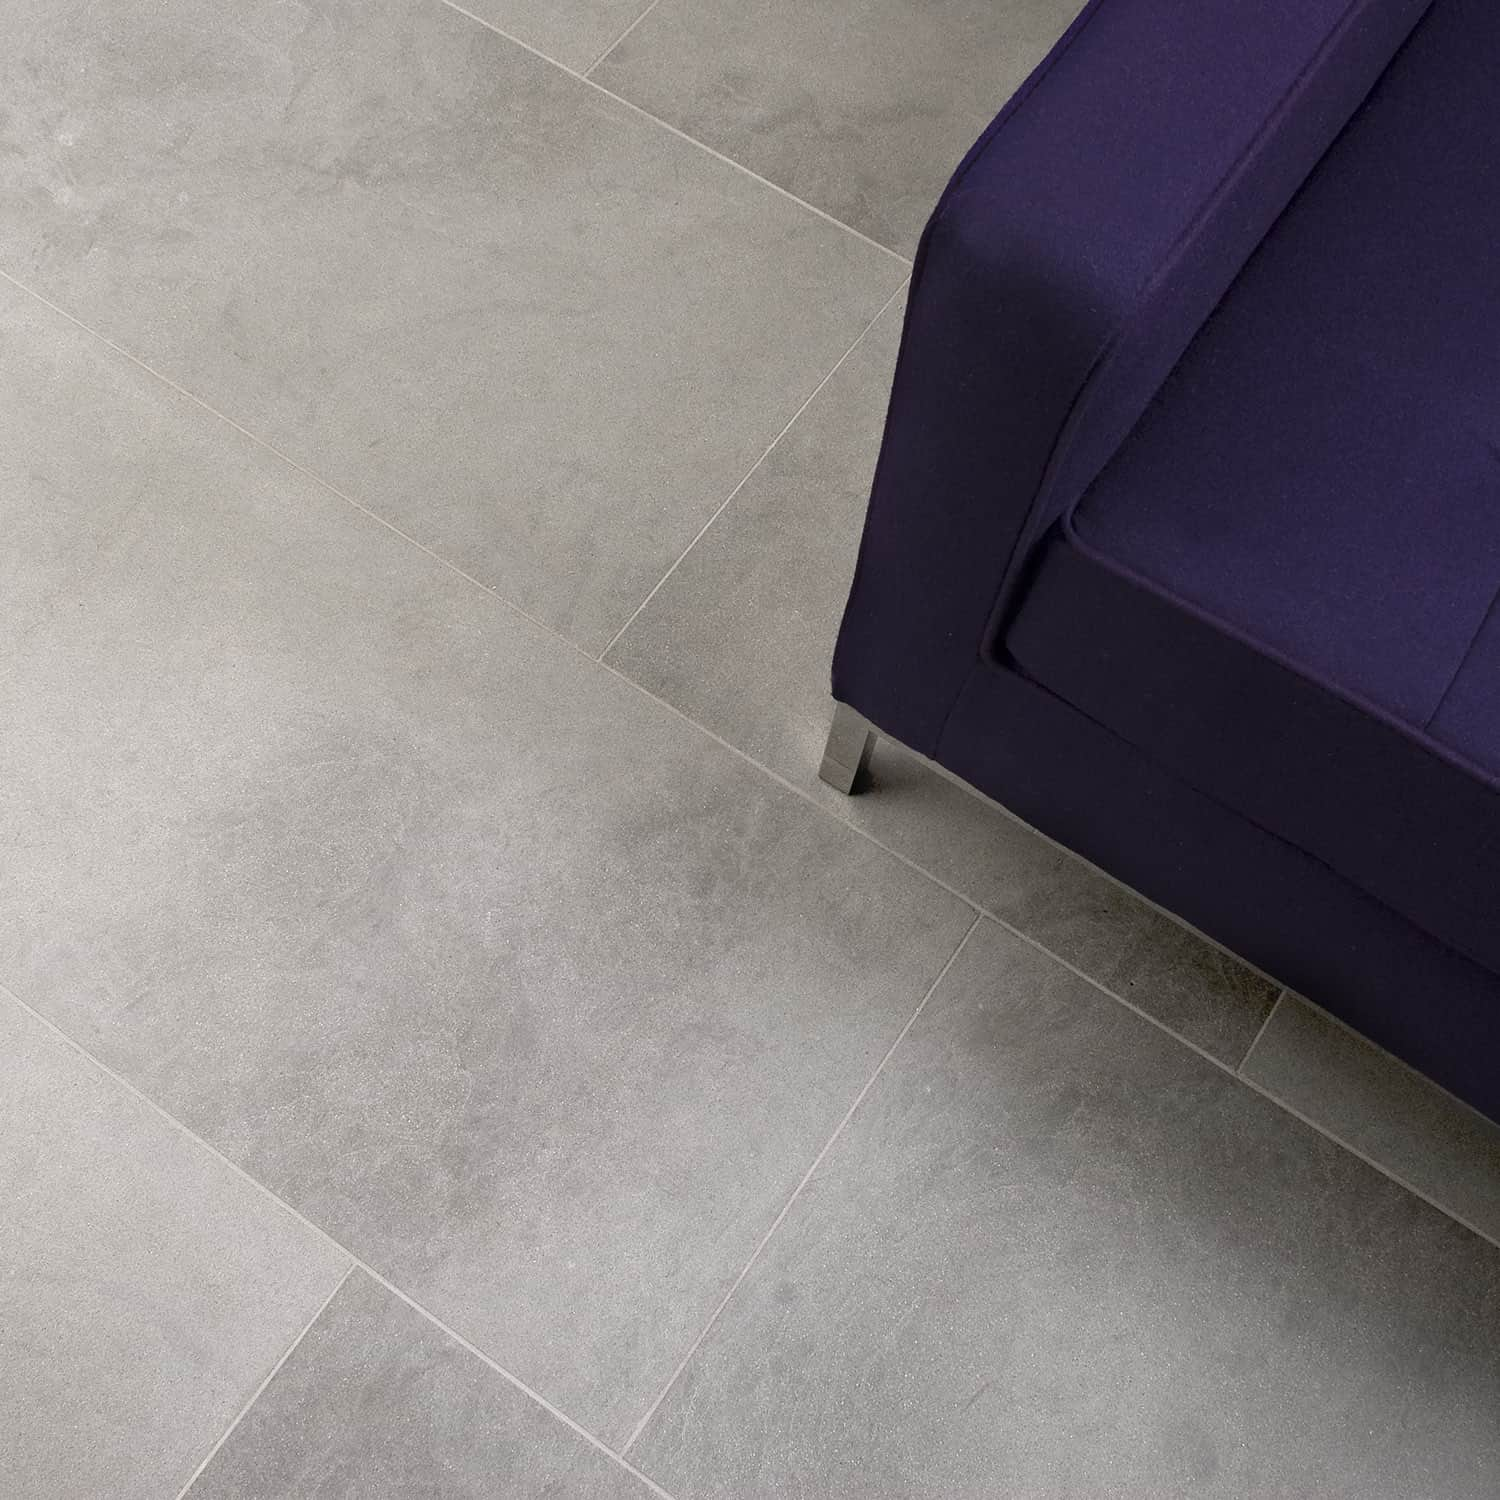 Pietra serena the stone collectionthe stone collection add sample to basket dailygadgetfo Choice Image